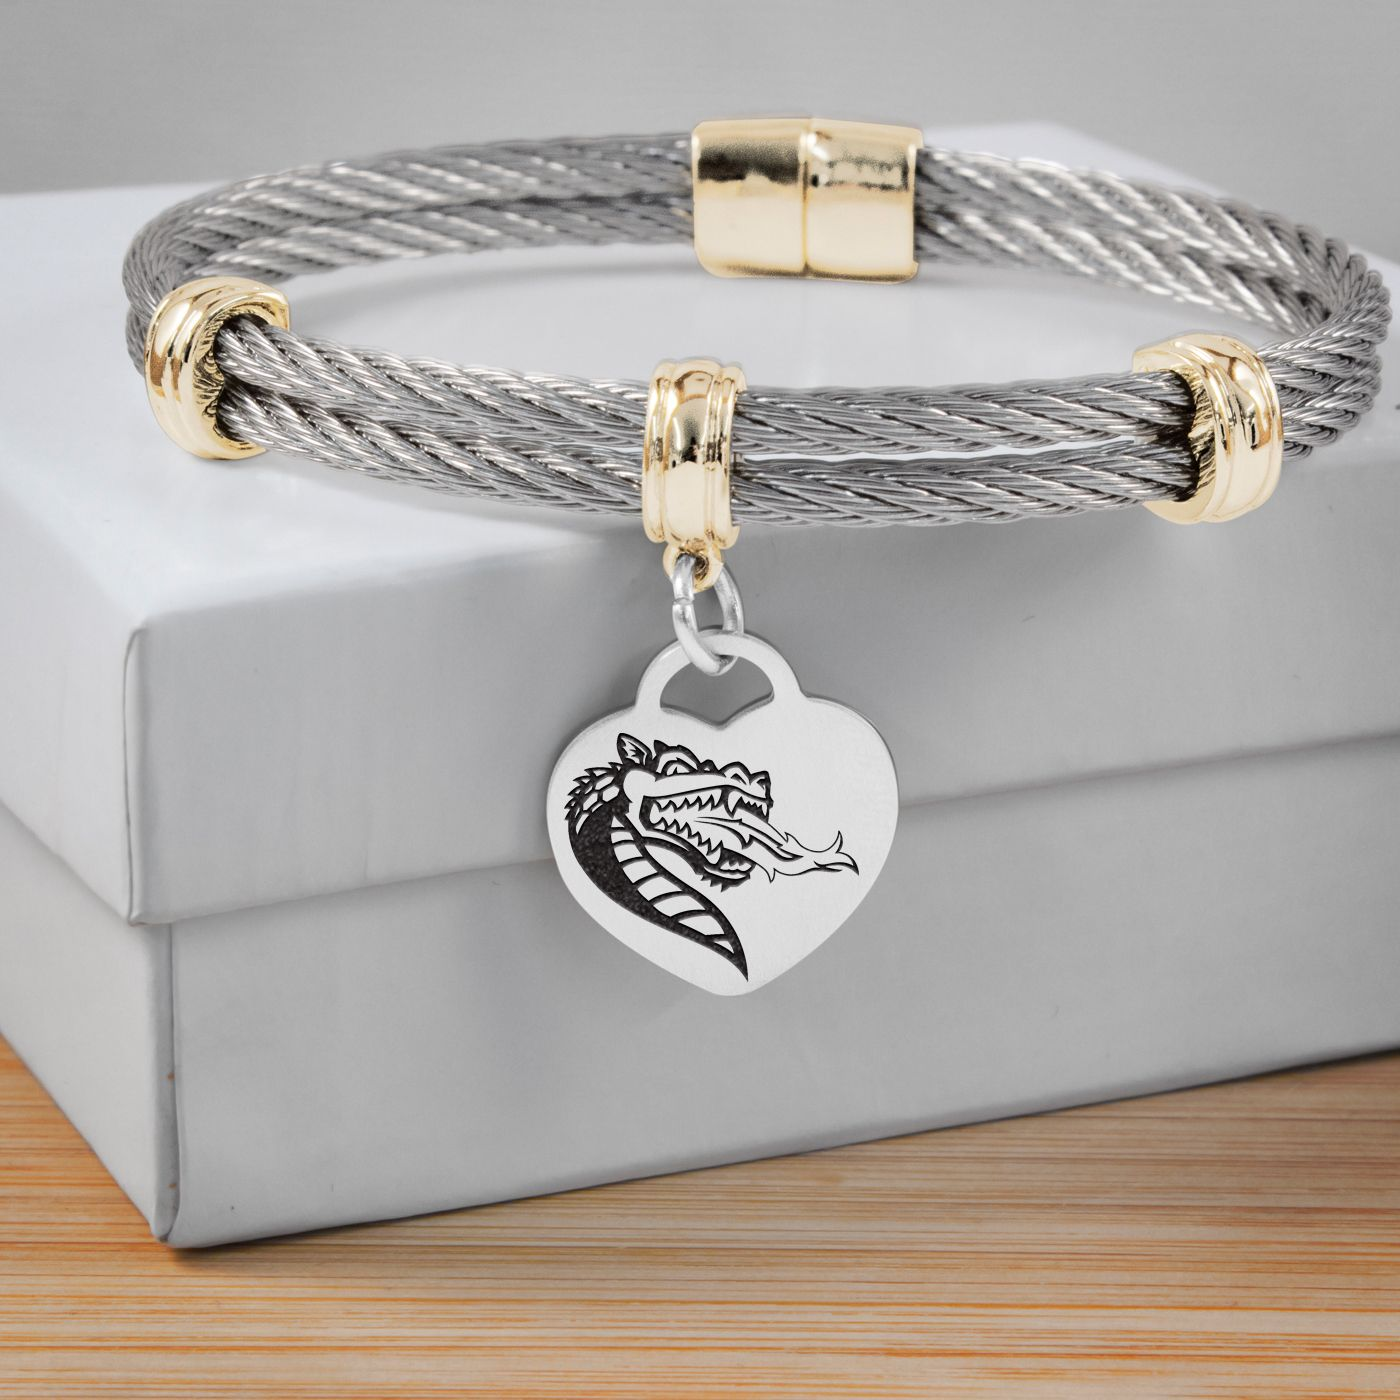 Columbus State University Cougars Stainless Steel Adjustable Bangle Bracelet with Heart Charm